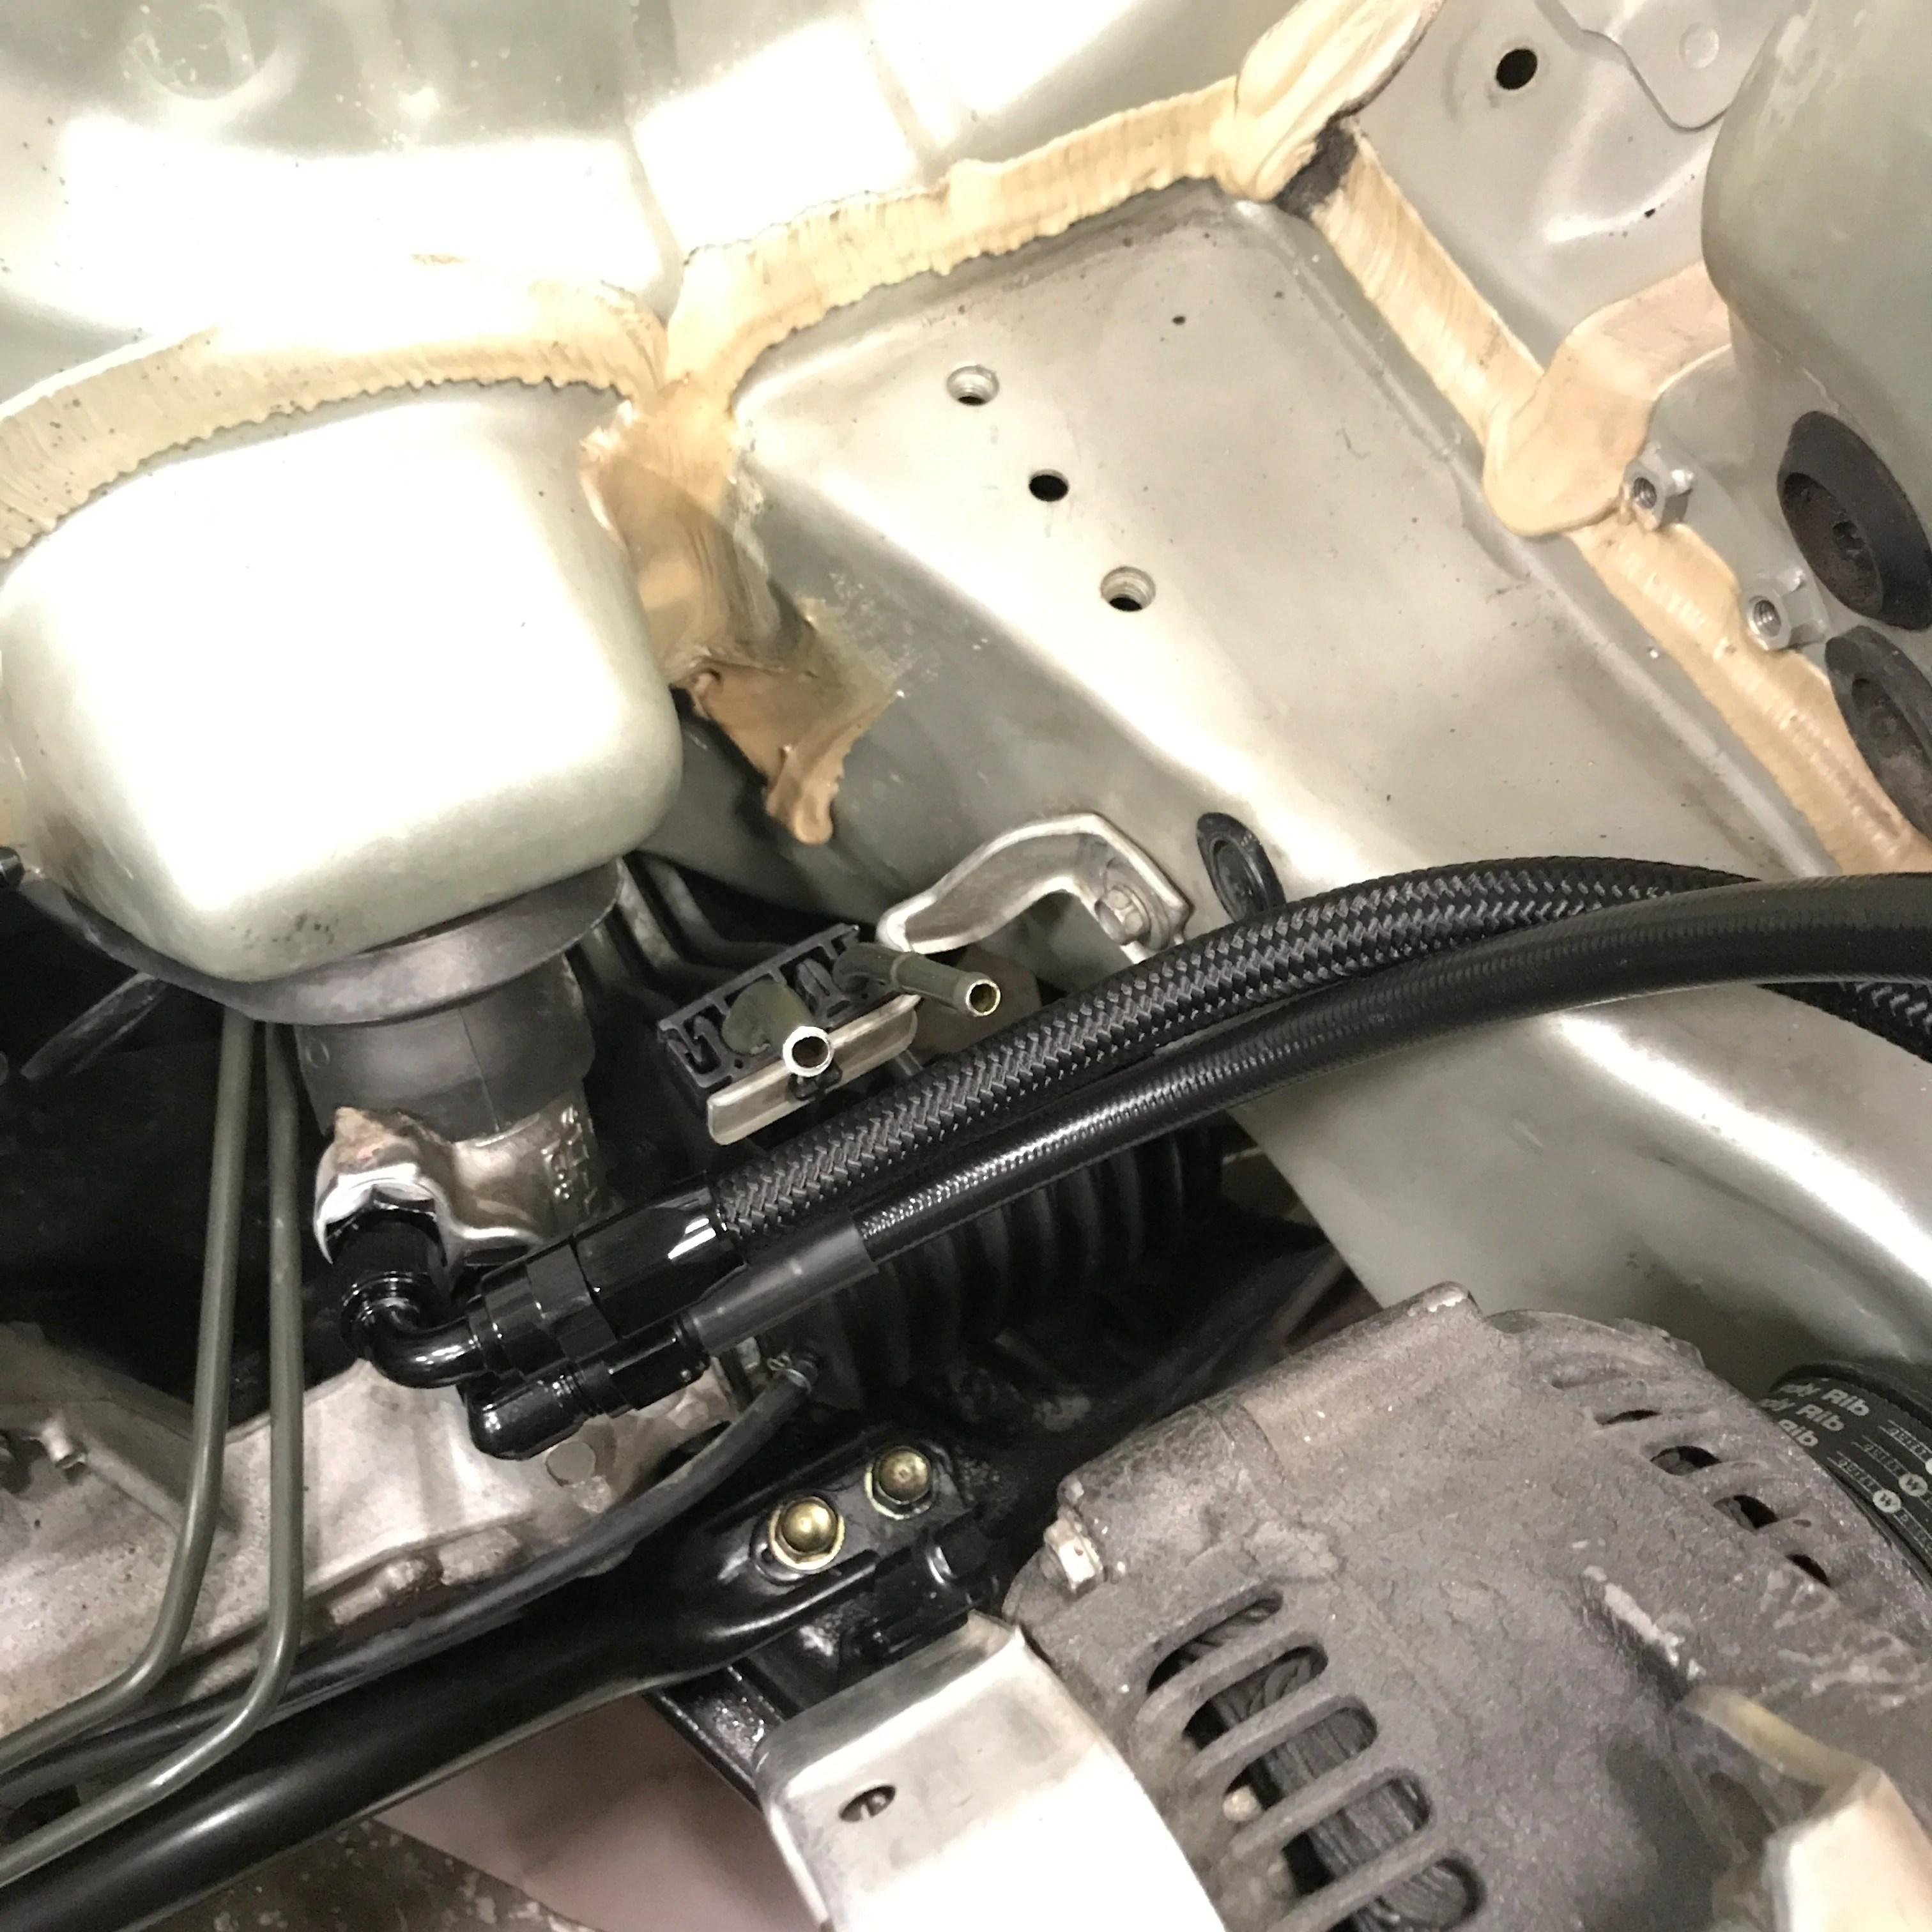 hight resolution of chase bays power steering kit 92 95 civic 94 01 integra with chase bays power steering kit 92 95 civic 94 01 integra with